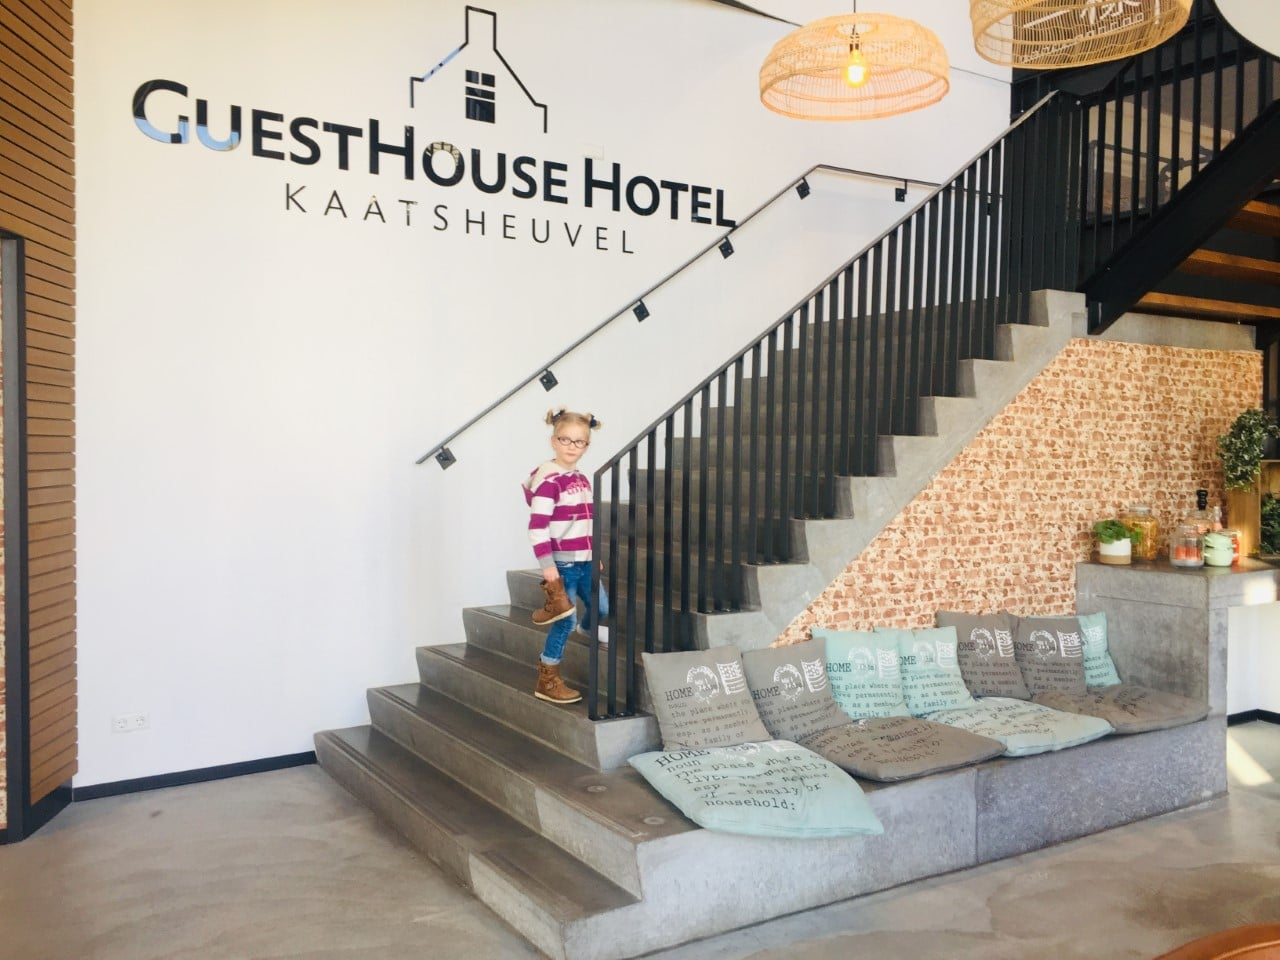 Entrance To GuestHouse Hotel